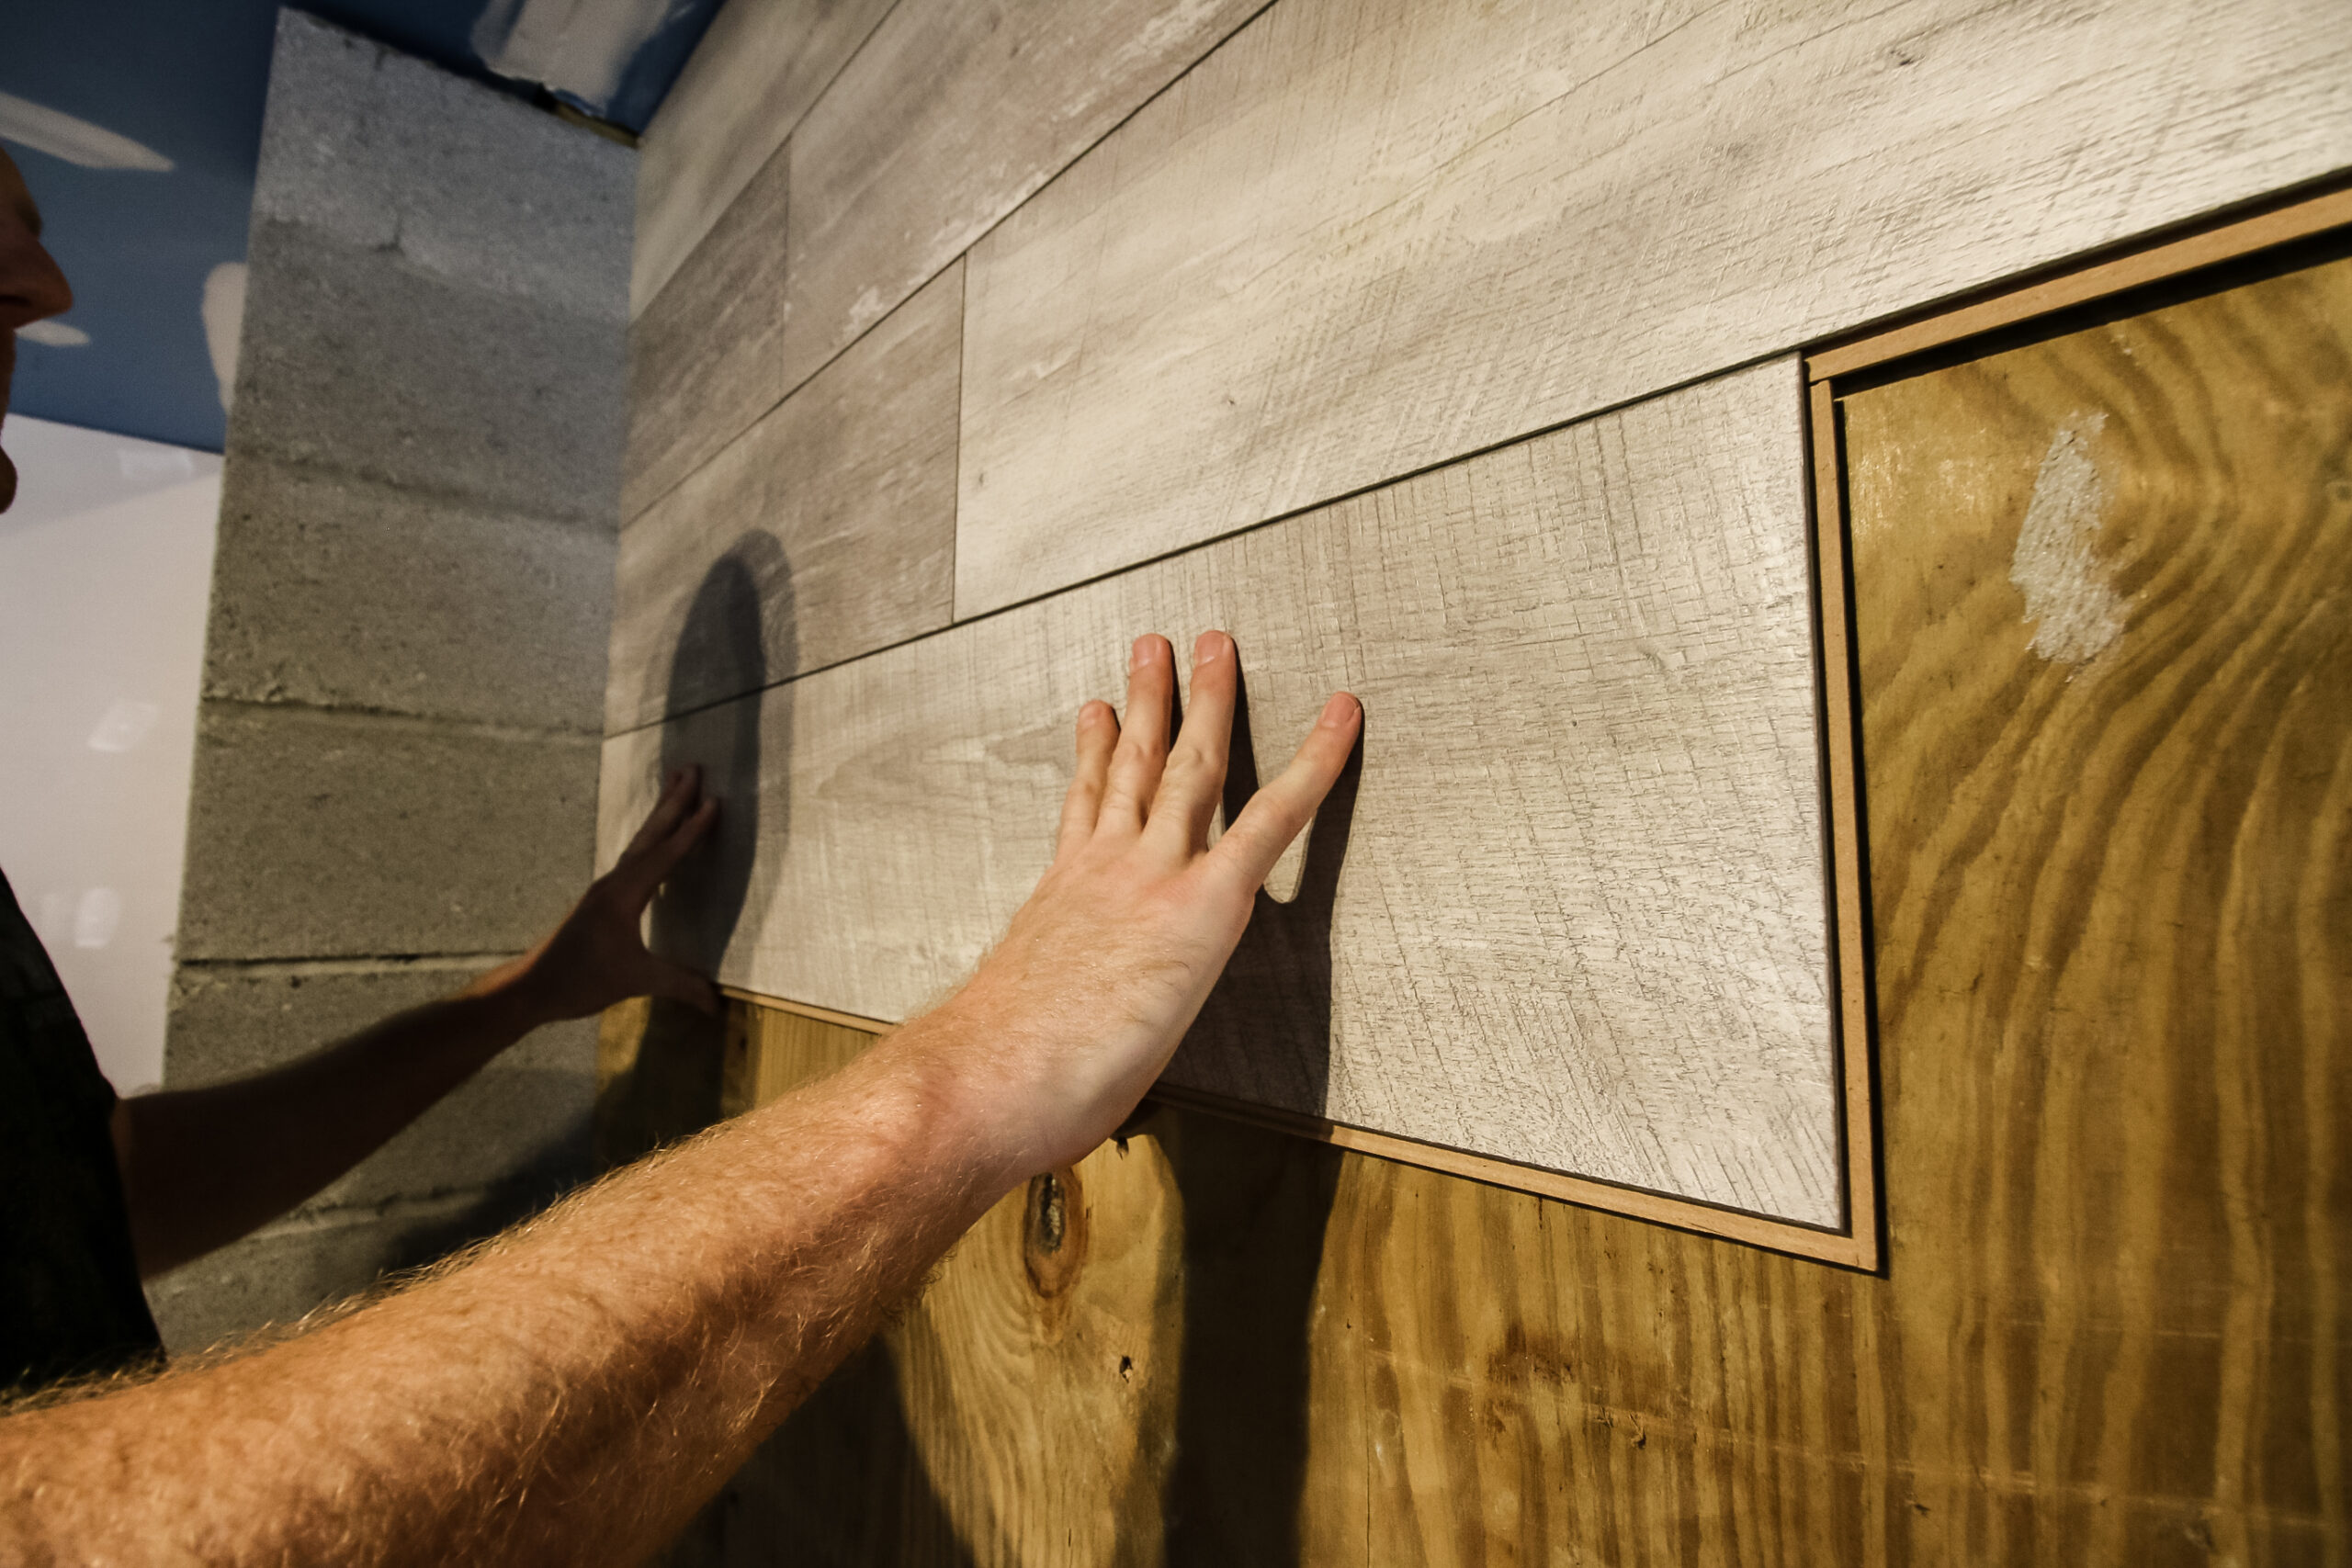 How To Make A Laminate Flooring Accent Wall, How To Install Laminate Wood Flooring On Walls